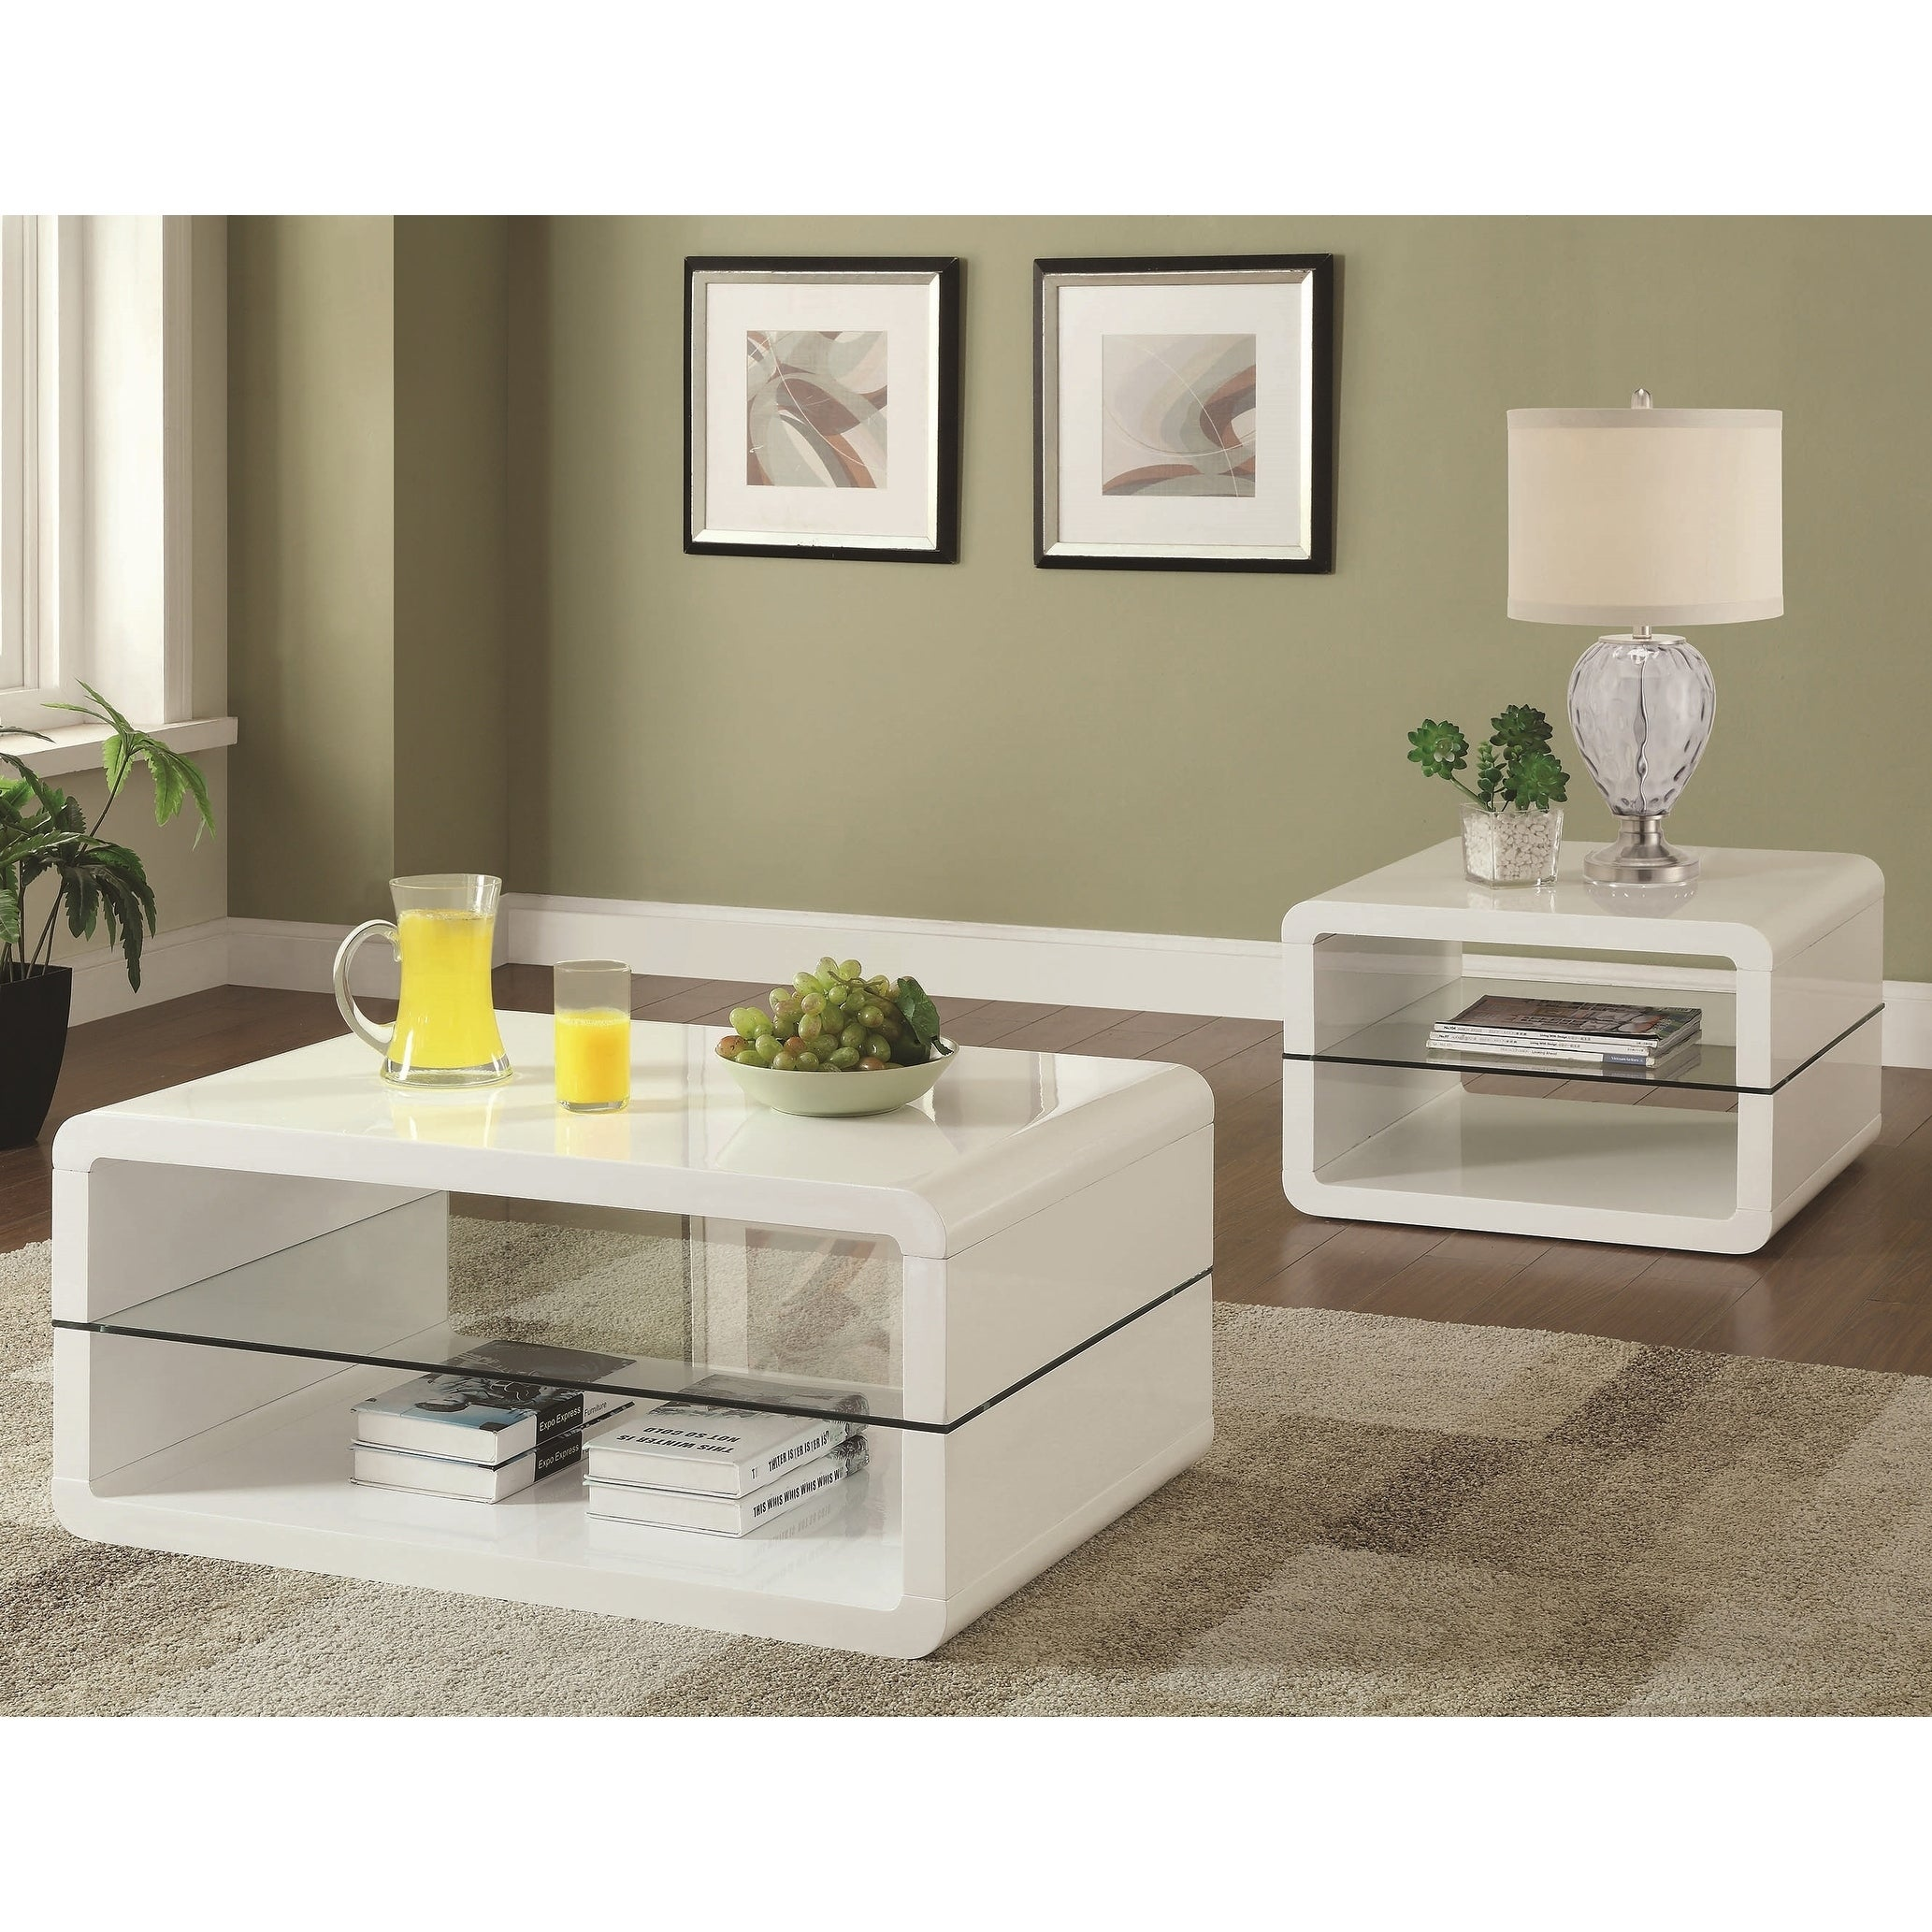 Modern Cube Design Living Room Accent Table Collection with Glass Shelf